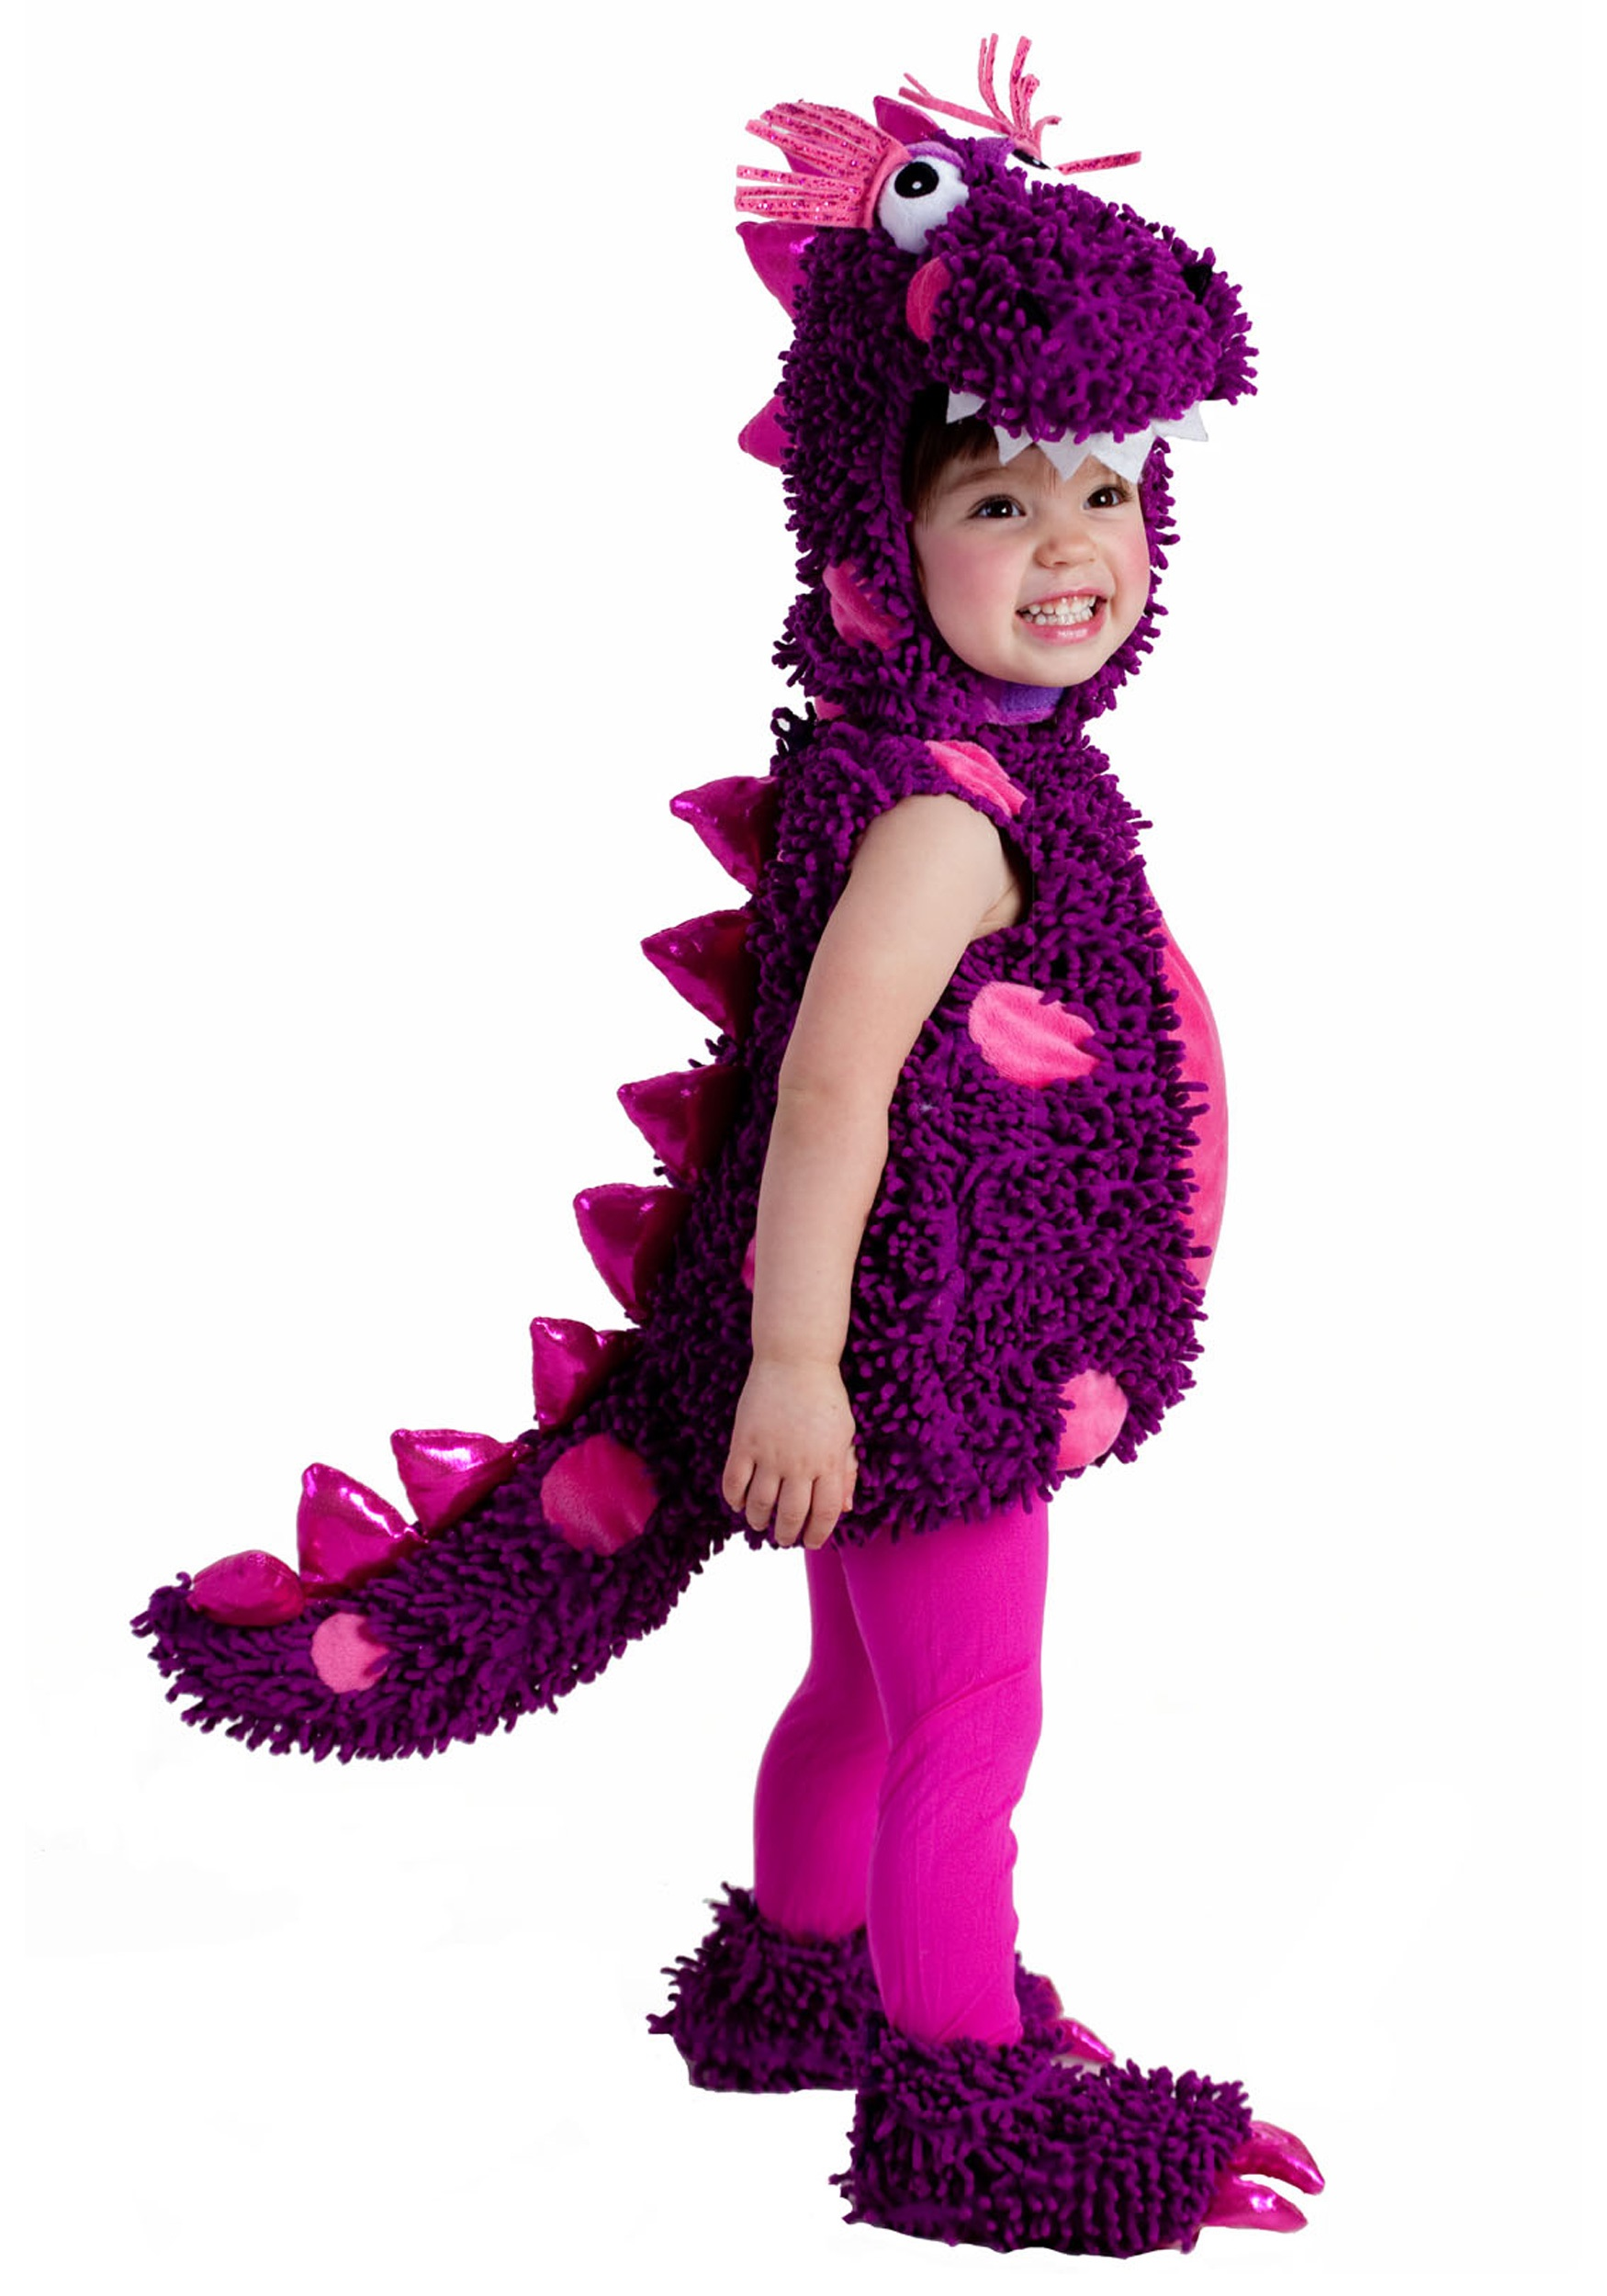 paige the dragon costume - Dragon Toddler Halloween Costume